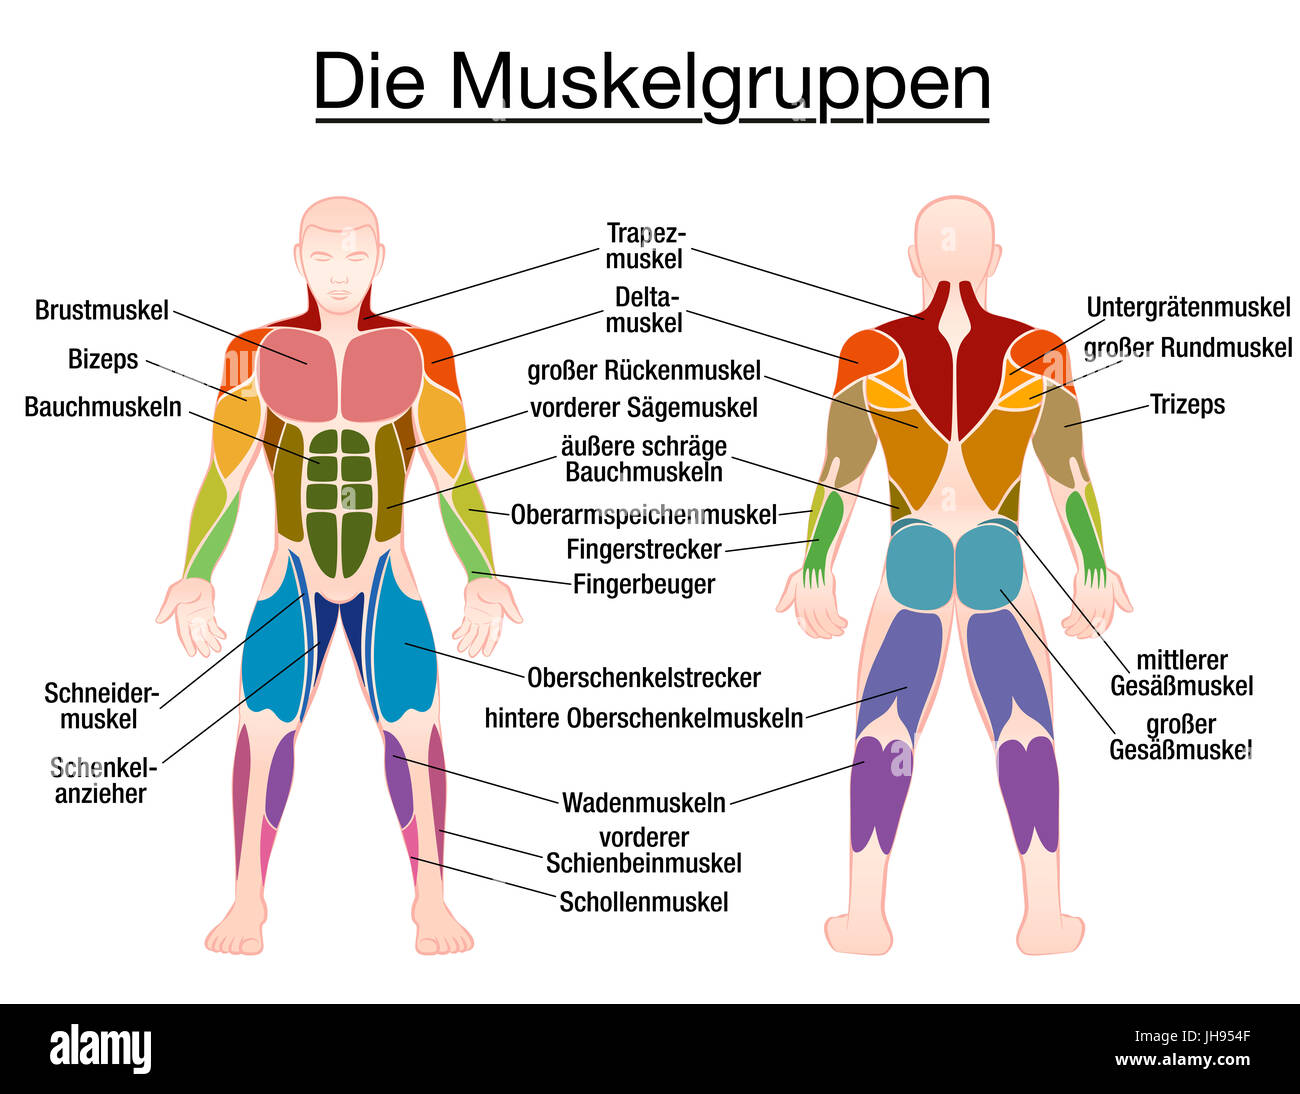 Muscle chart german labeling most important muscles of the human muscle chart german labeling most important muscles of the human body colored front and back view ccuart Choice Image